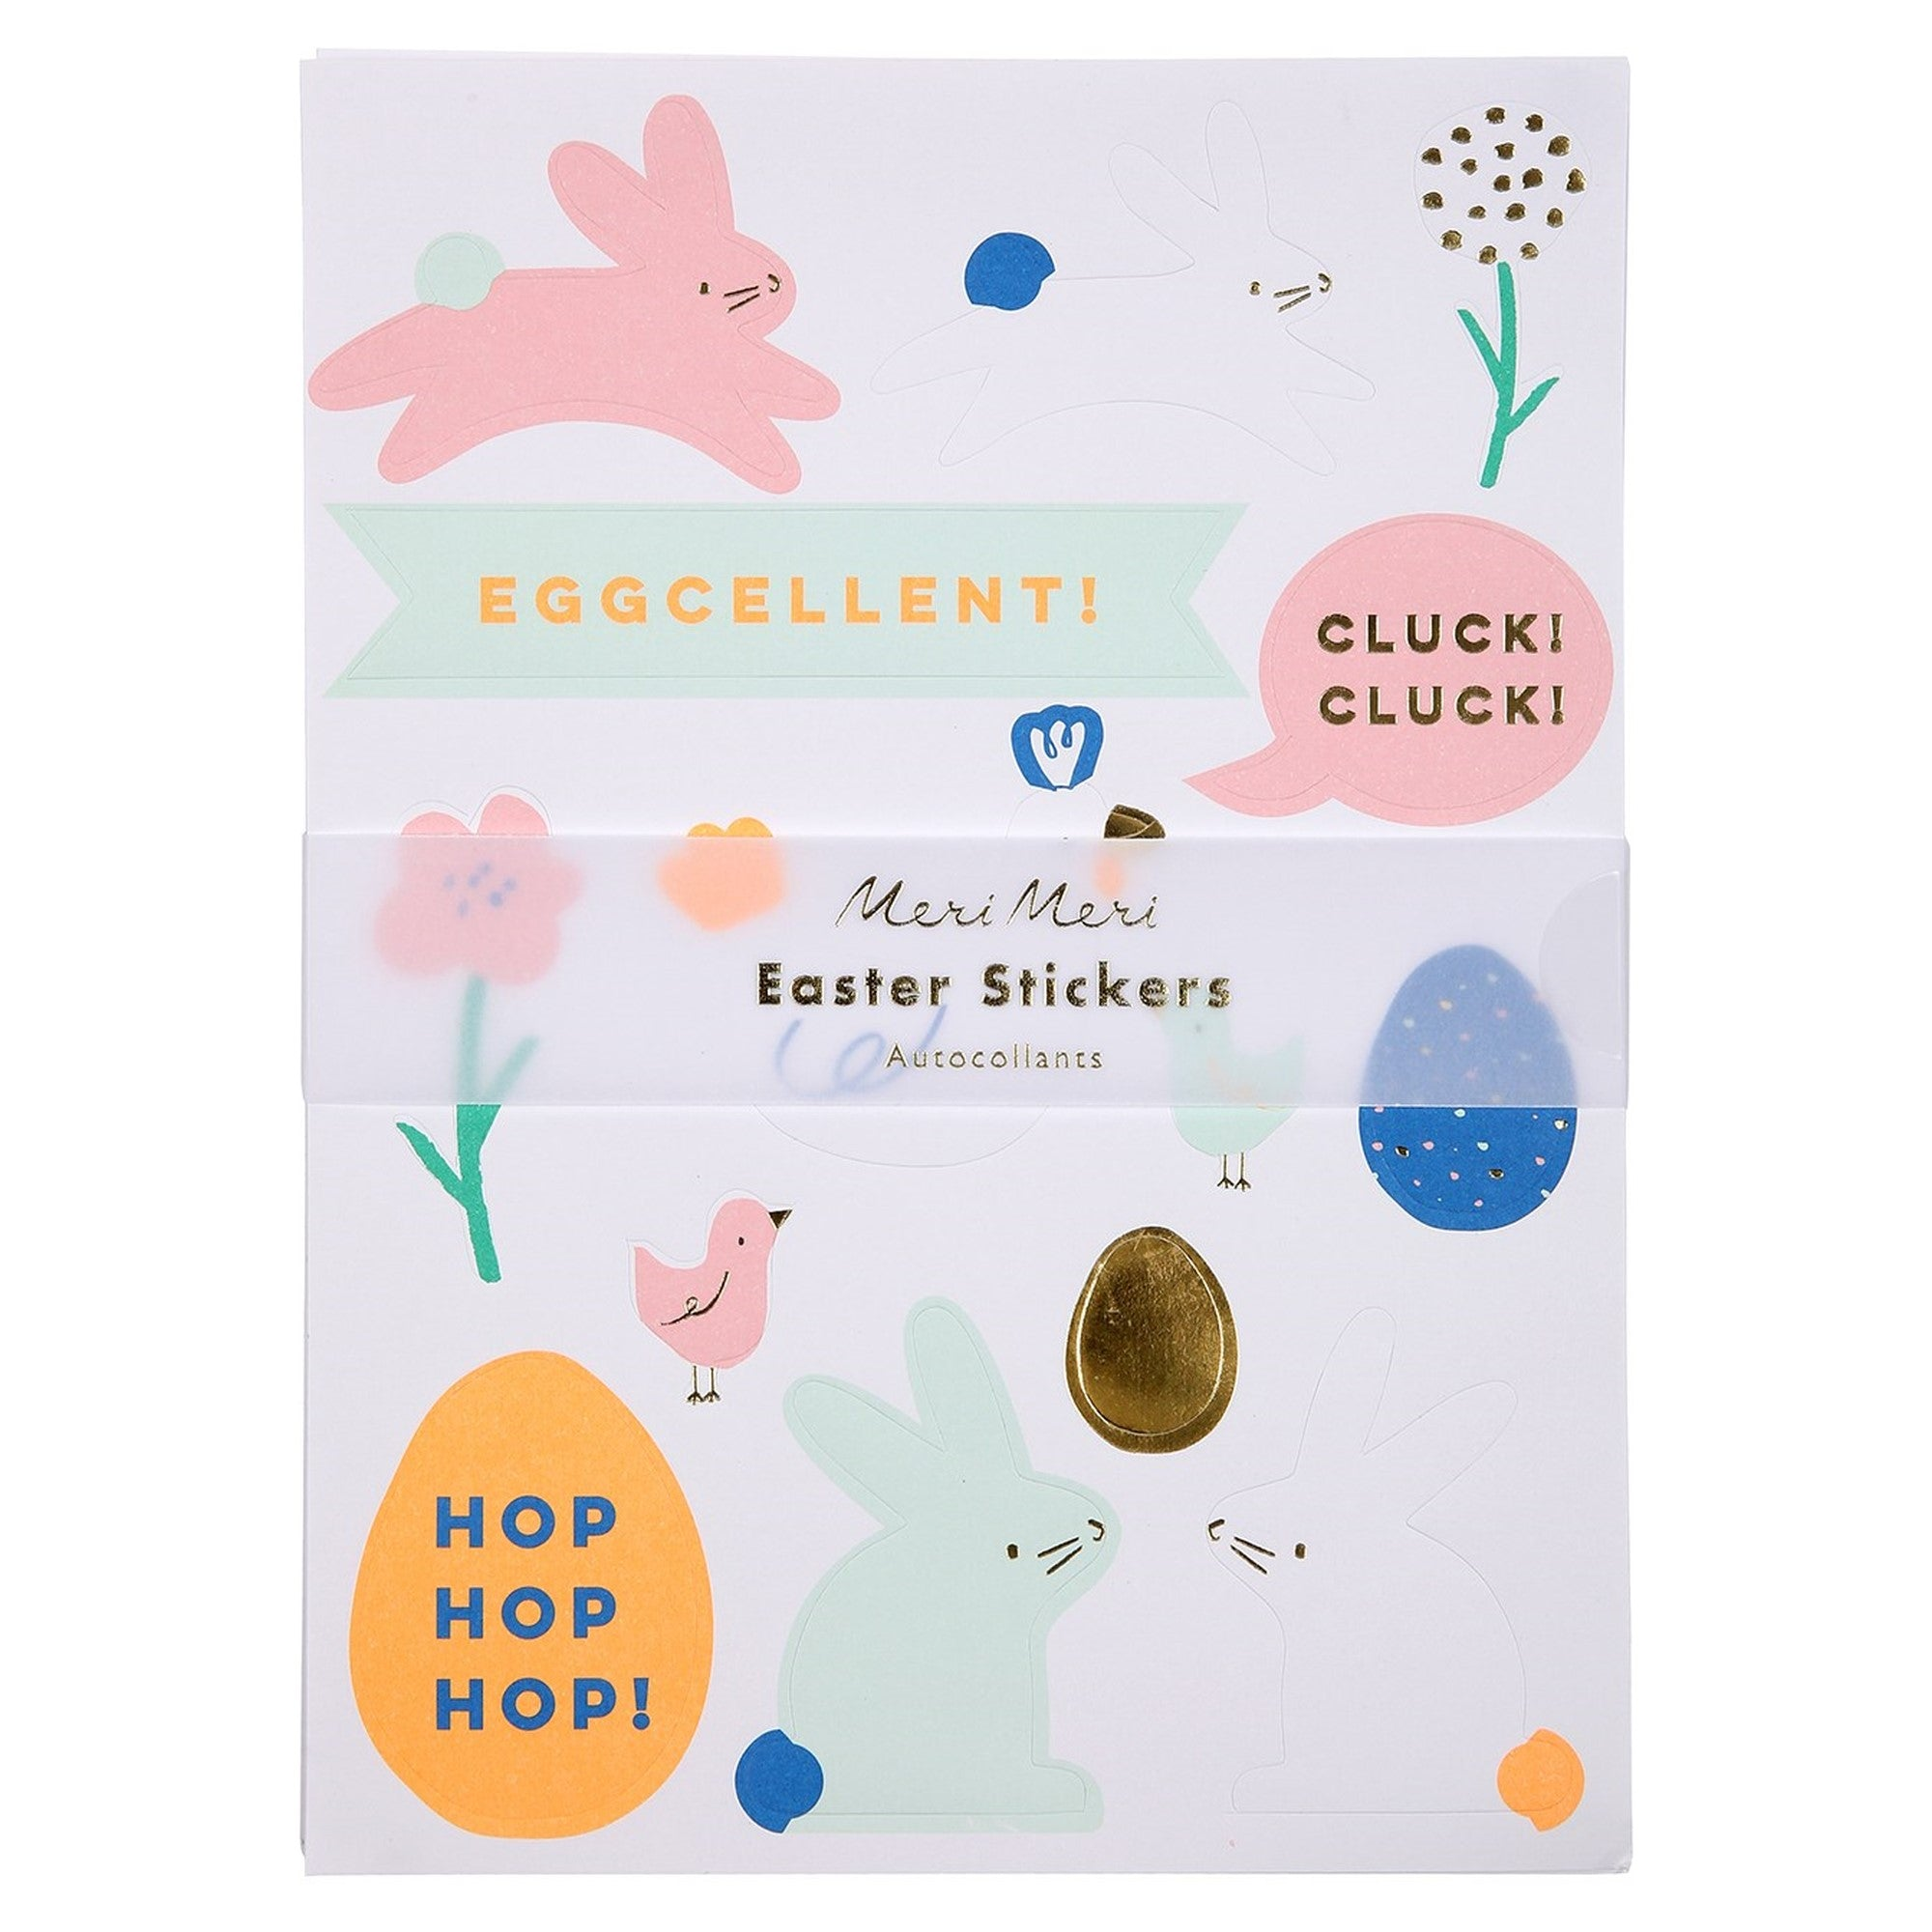 Meri Meri Easter Sticker Sheet | Le Petite Putti Celebrations